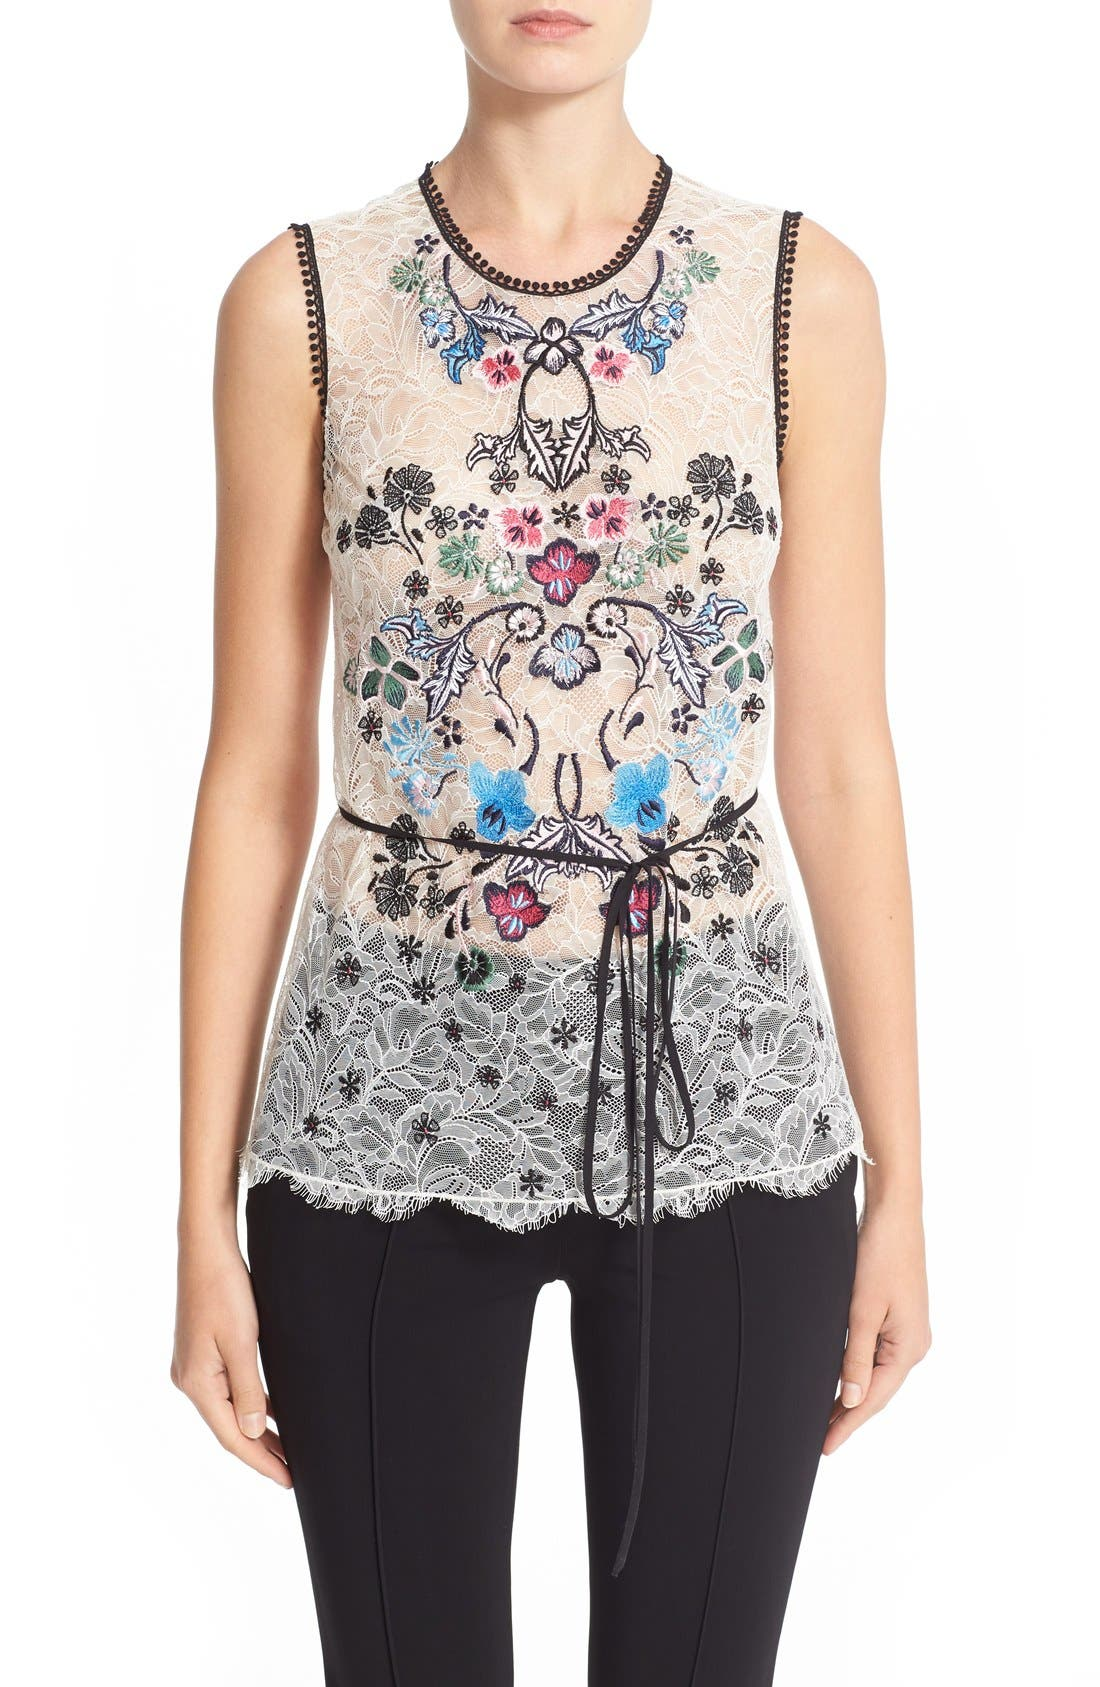 Main Image - Yigal Azrouël Floral Embroidered Lace Top